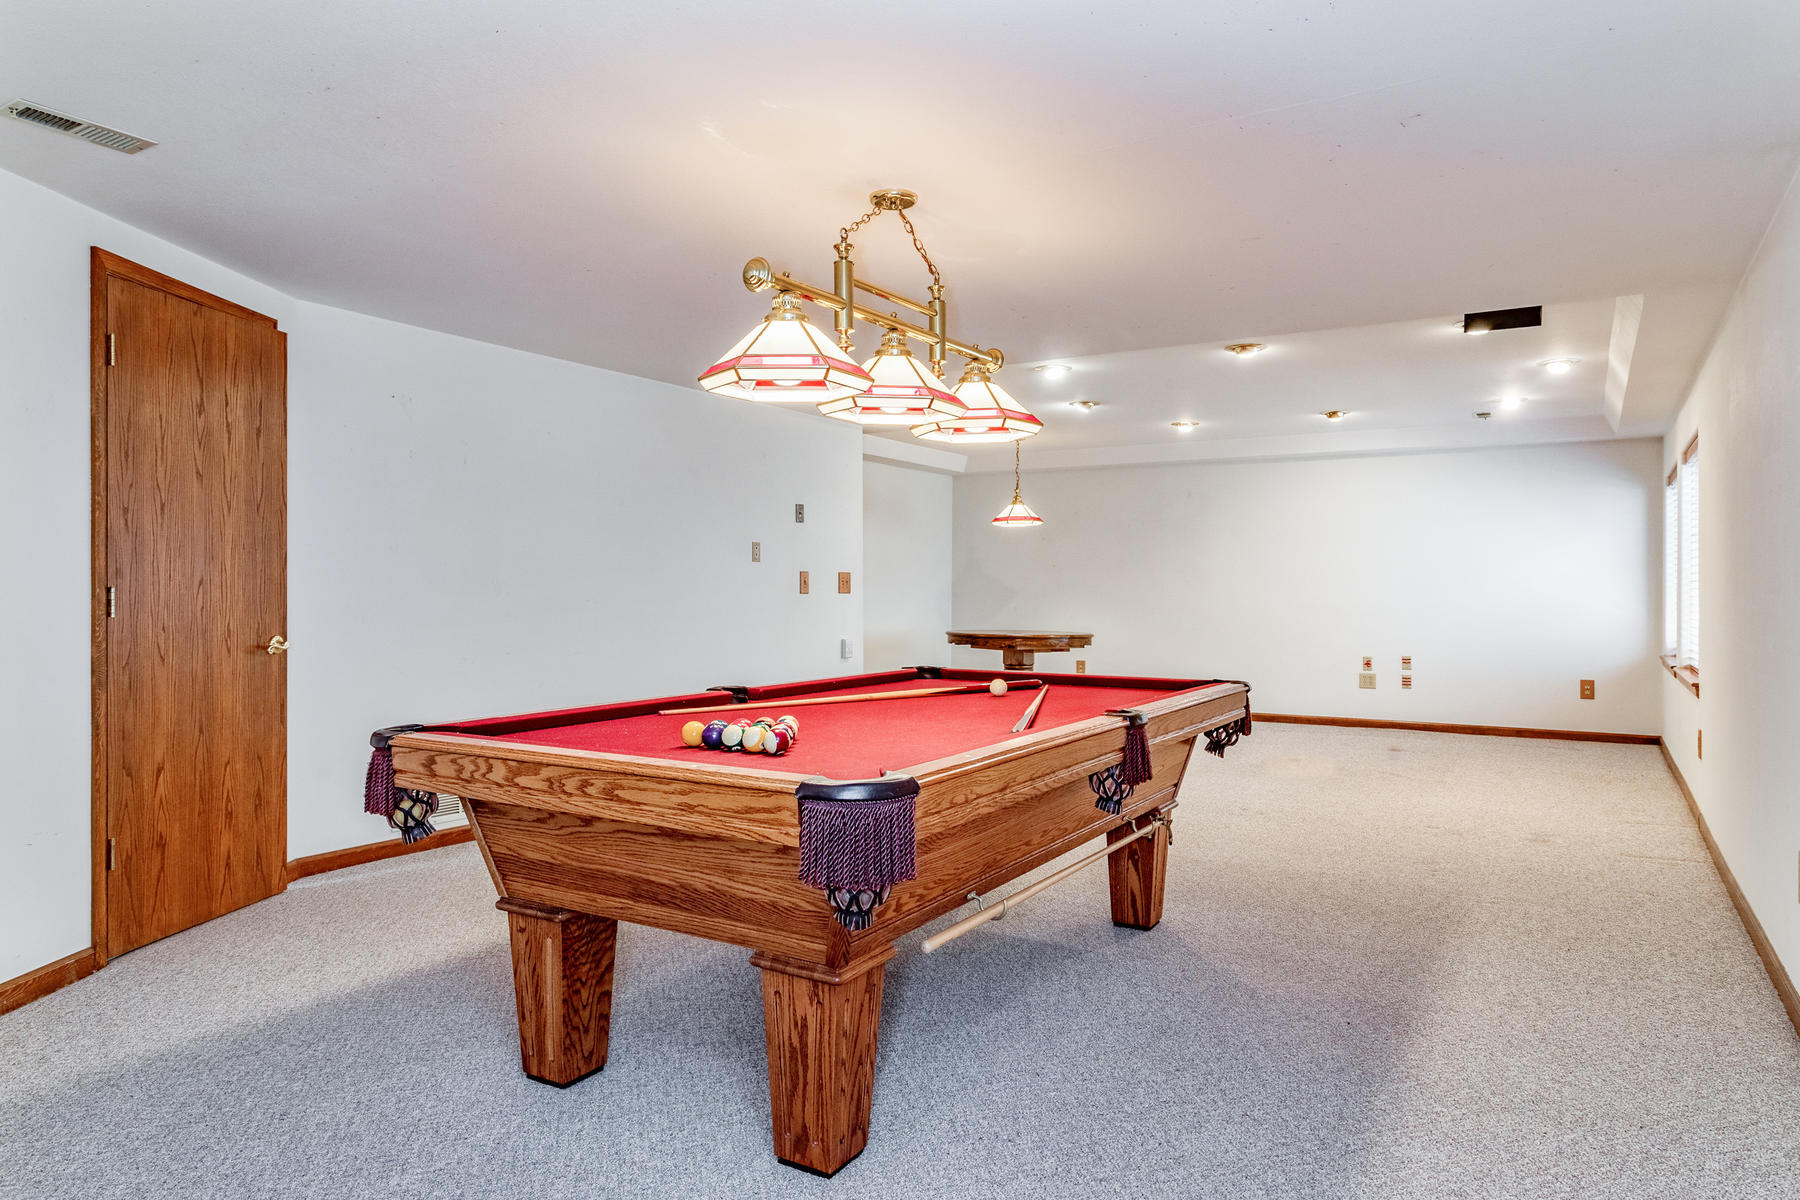 Full Finished Basement for Expanded Living Space